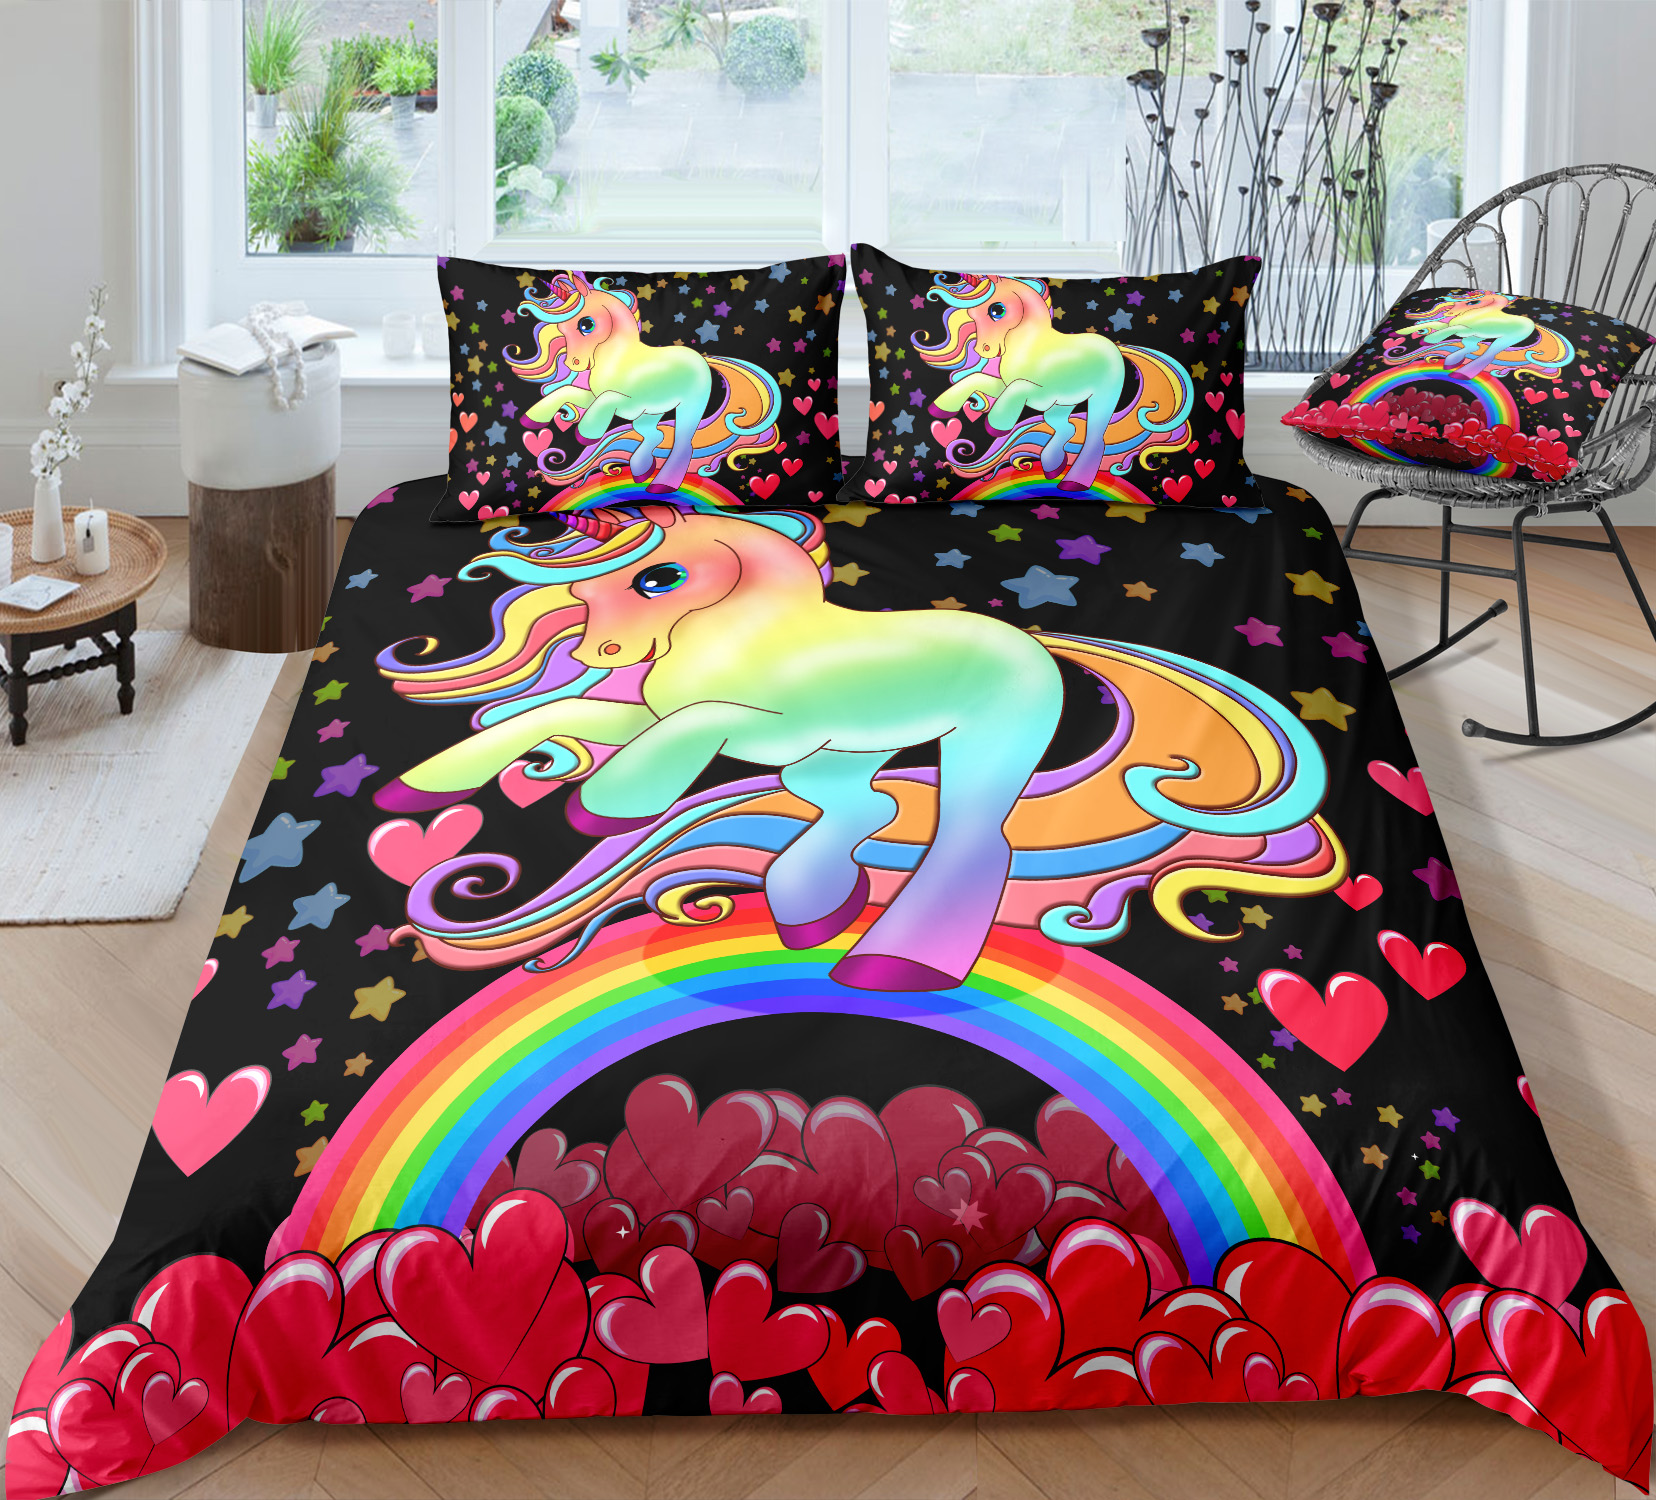 red hearts bedding set for kid girl colorful star rainbow bed cover sets for girls